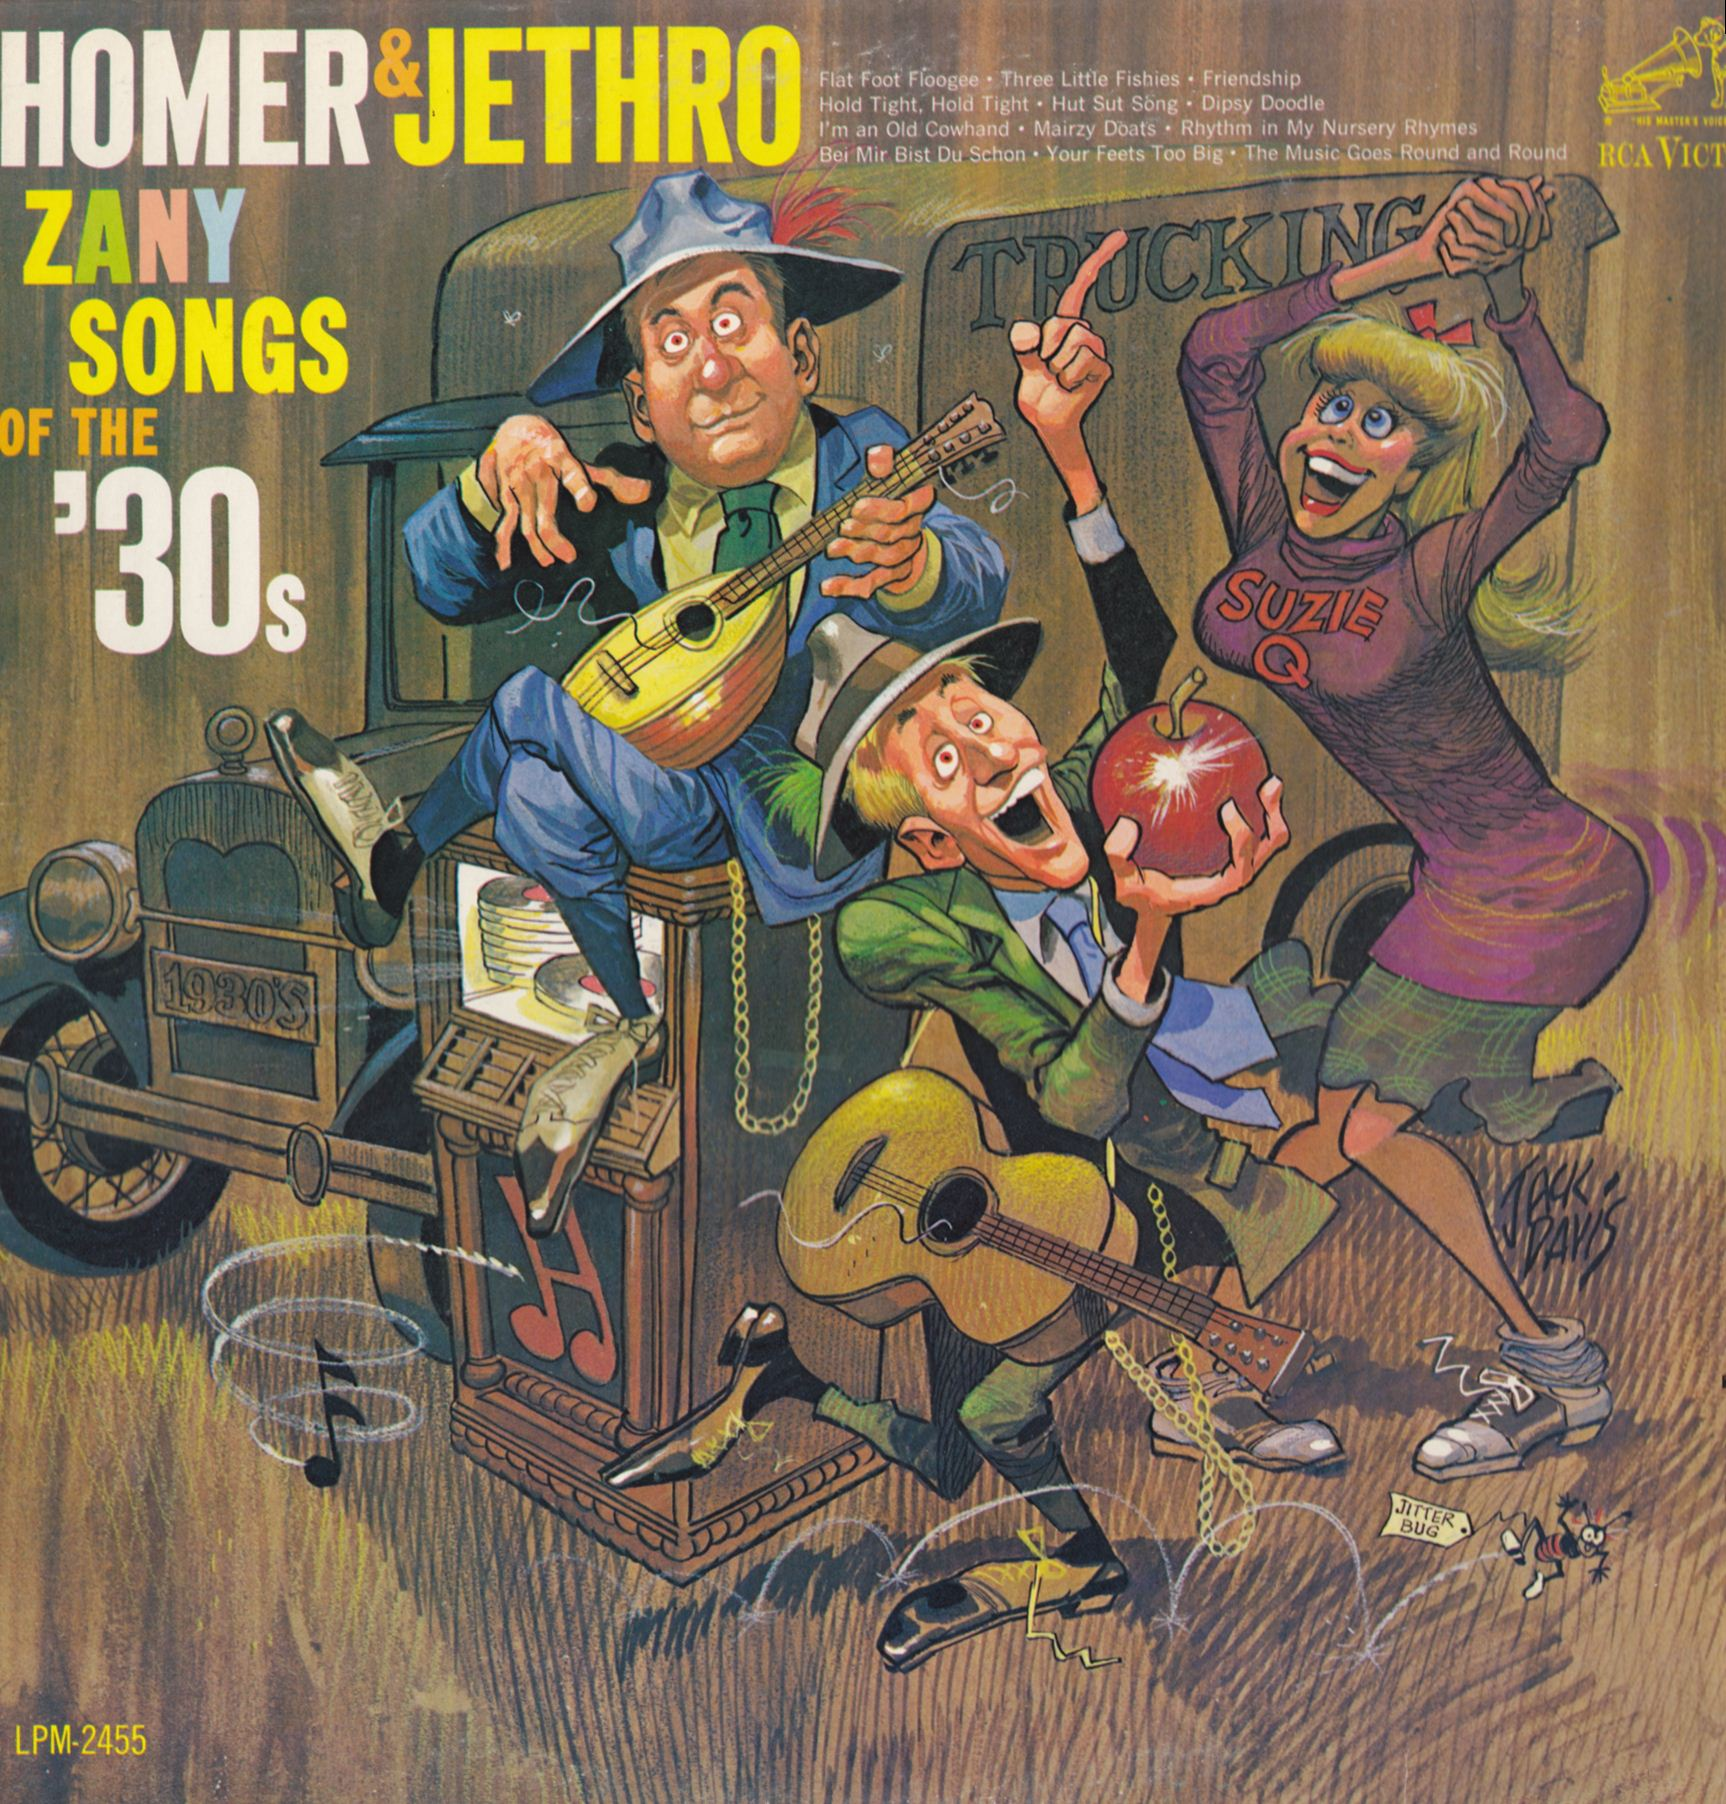 homer-and-jethro-zany-songs-of-the-30s